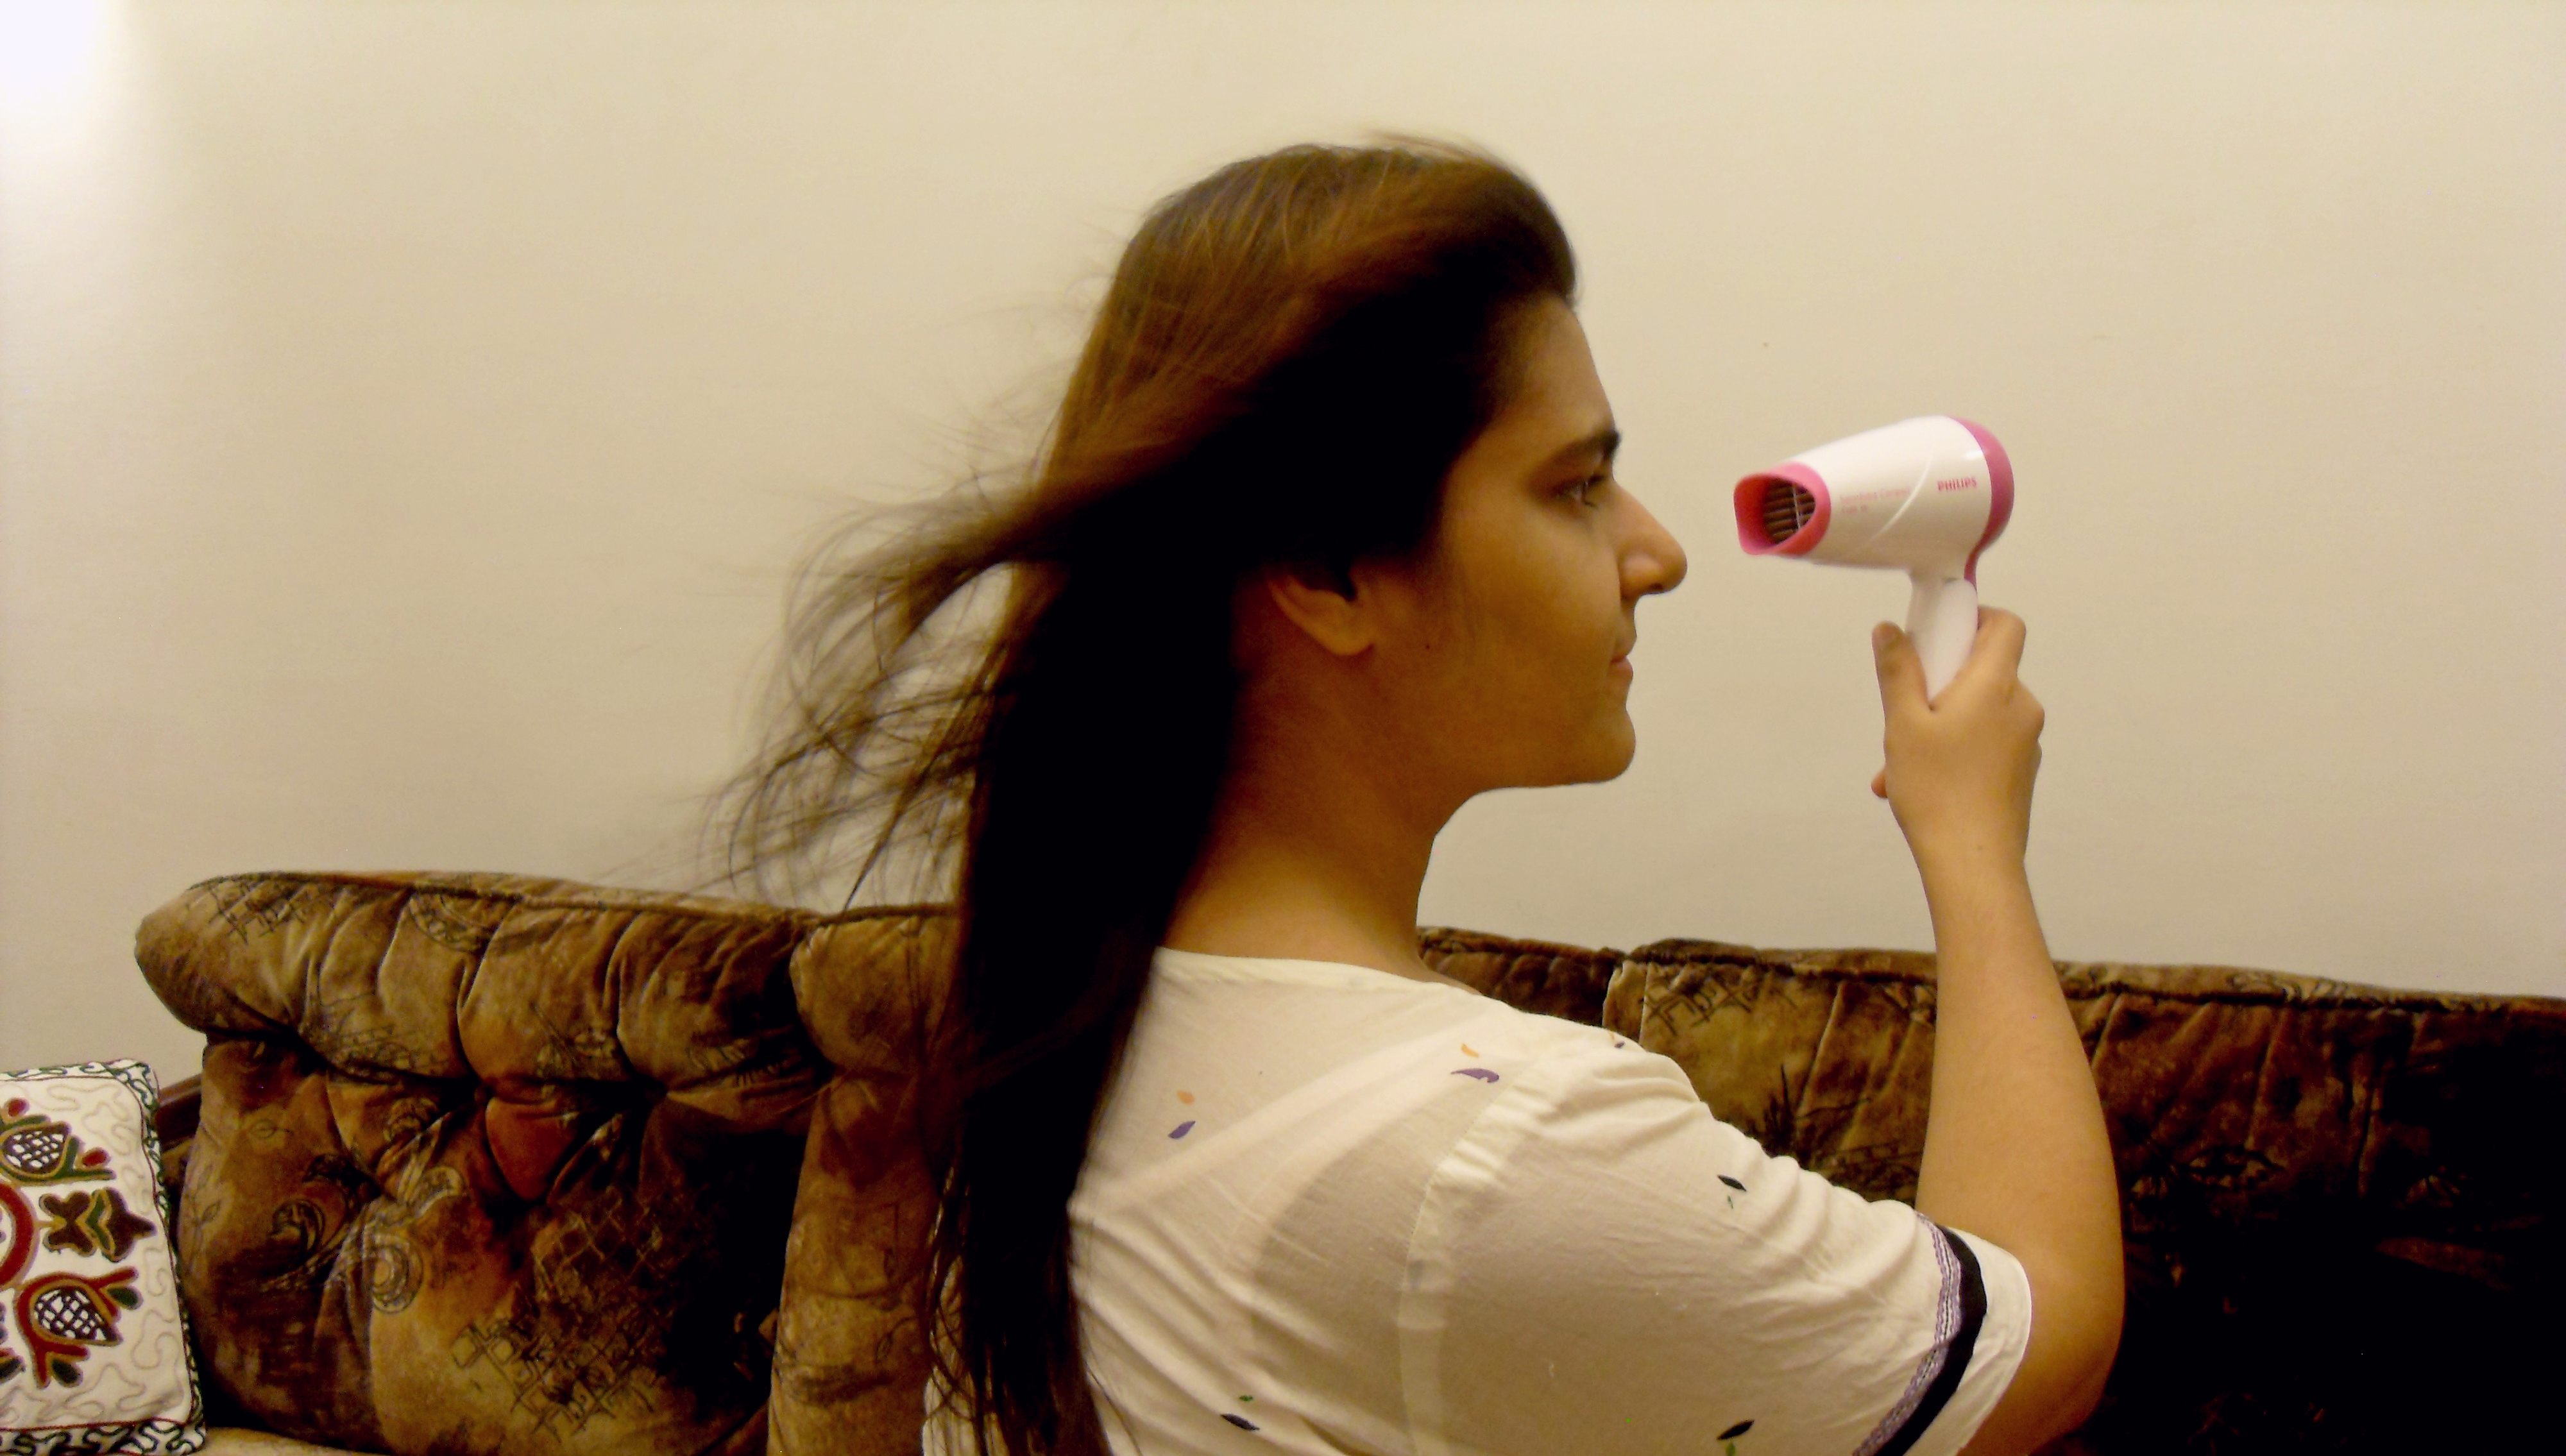 using a hair dryer from far away